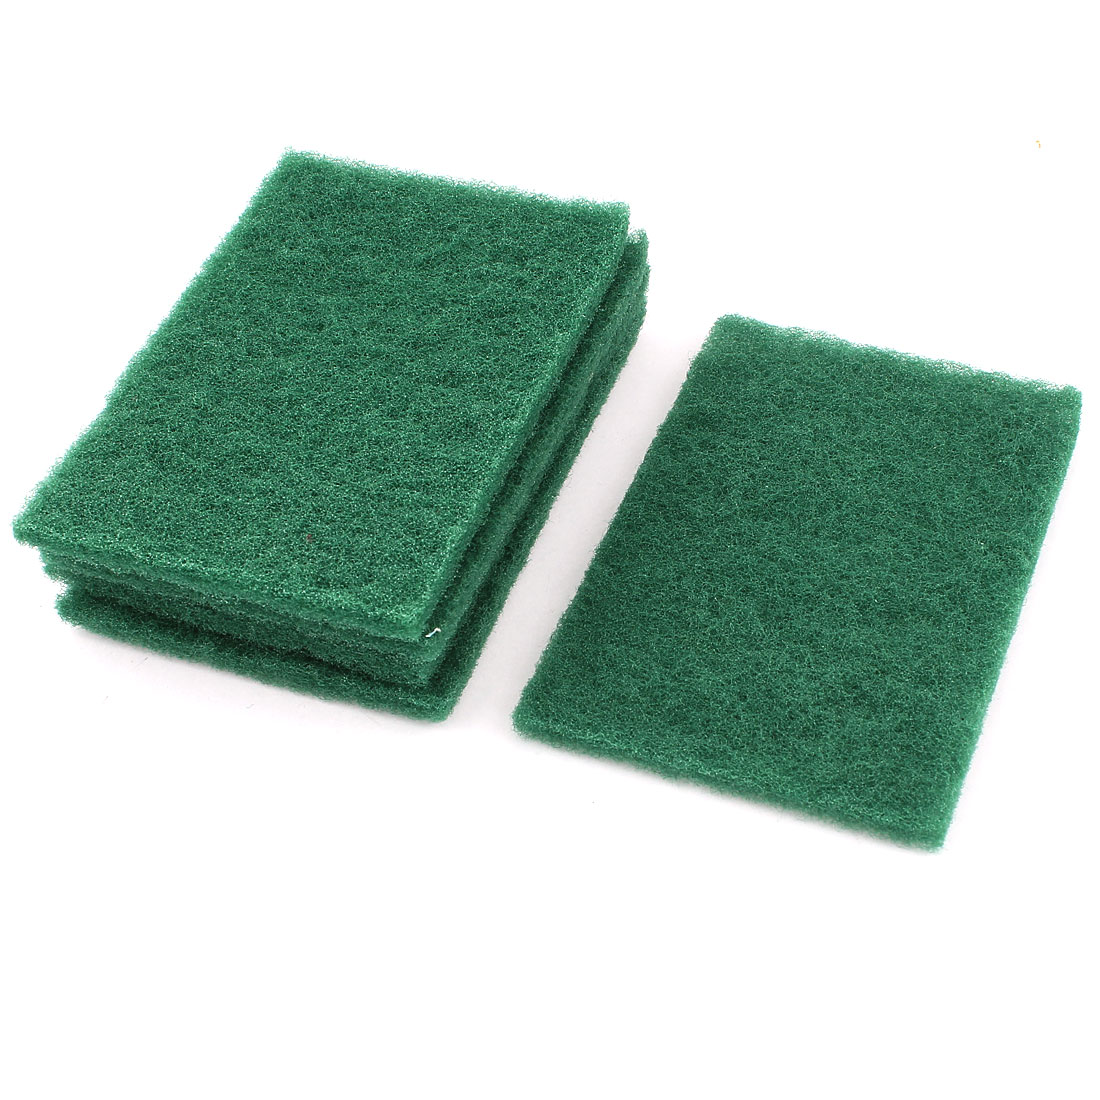 Unique Bargains Kitchen Bowl Dish Wash Clean Scrub Sponge Cleaning Pads Green 5pcs for Home Essential